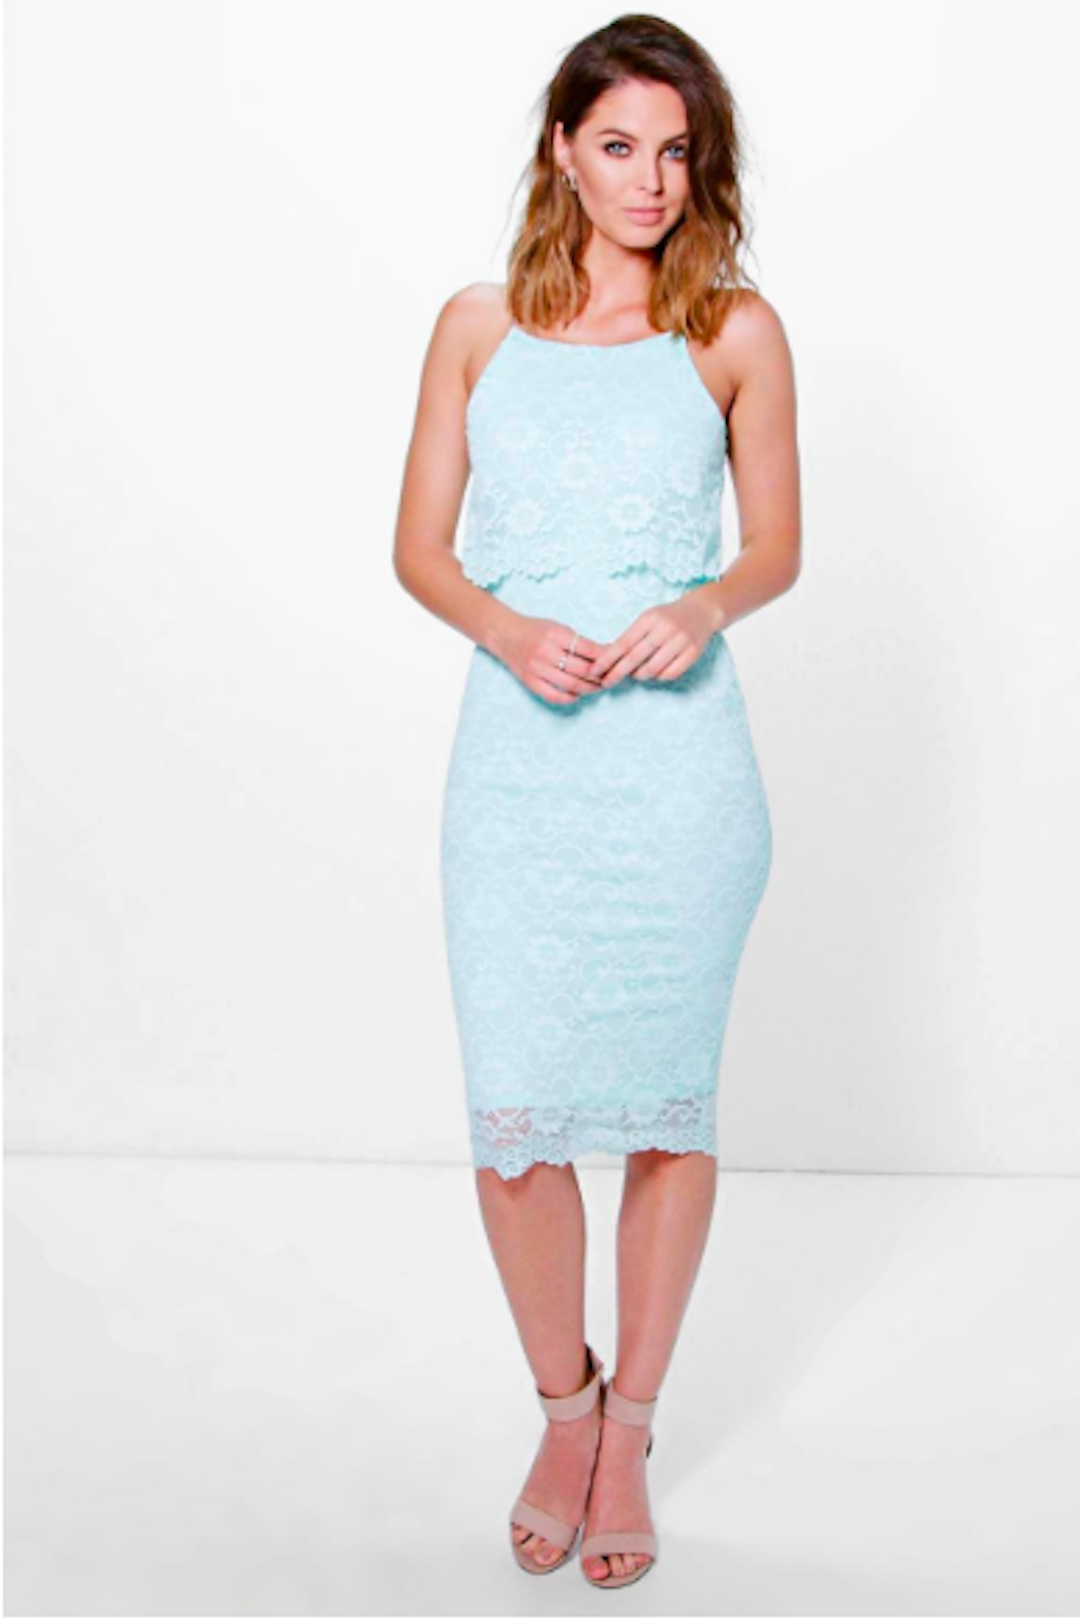 Ashley S Picks Wedding Guest Dresses Under 100